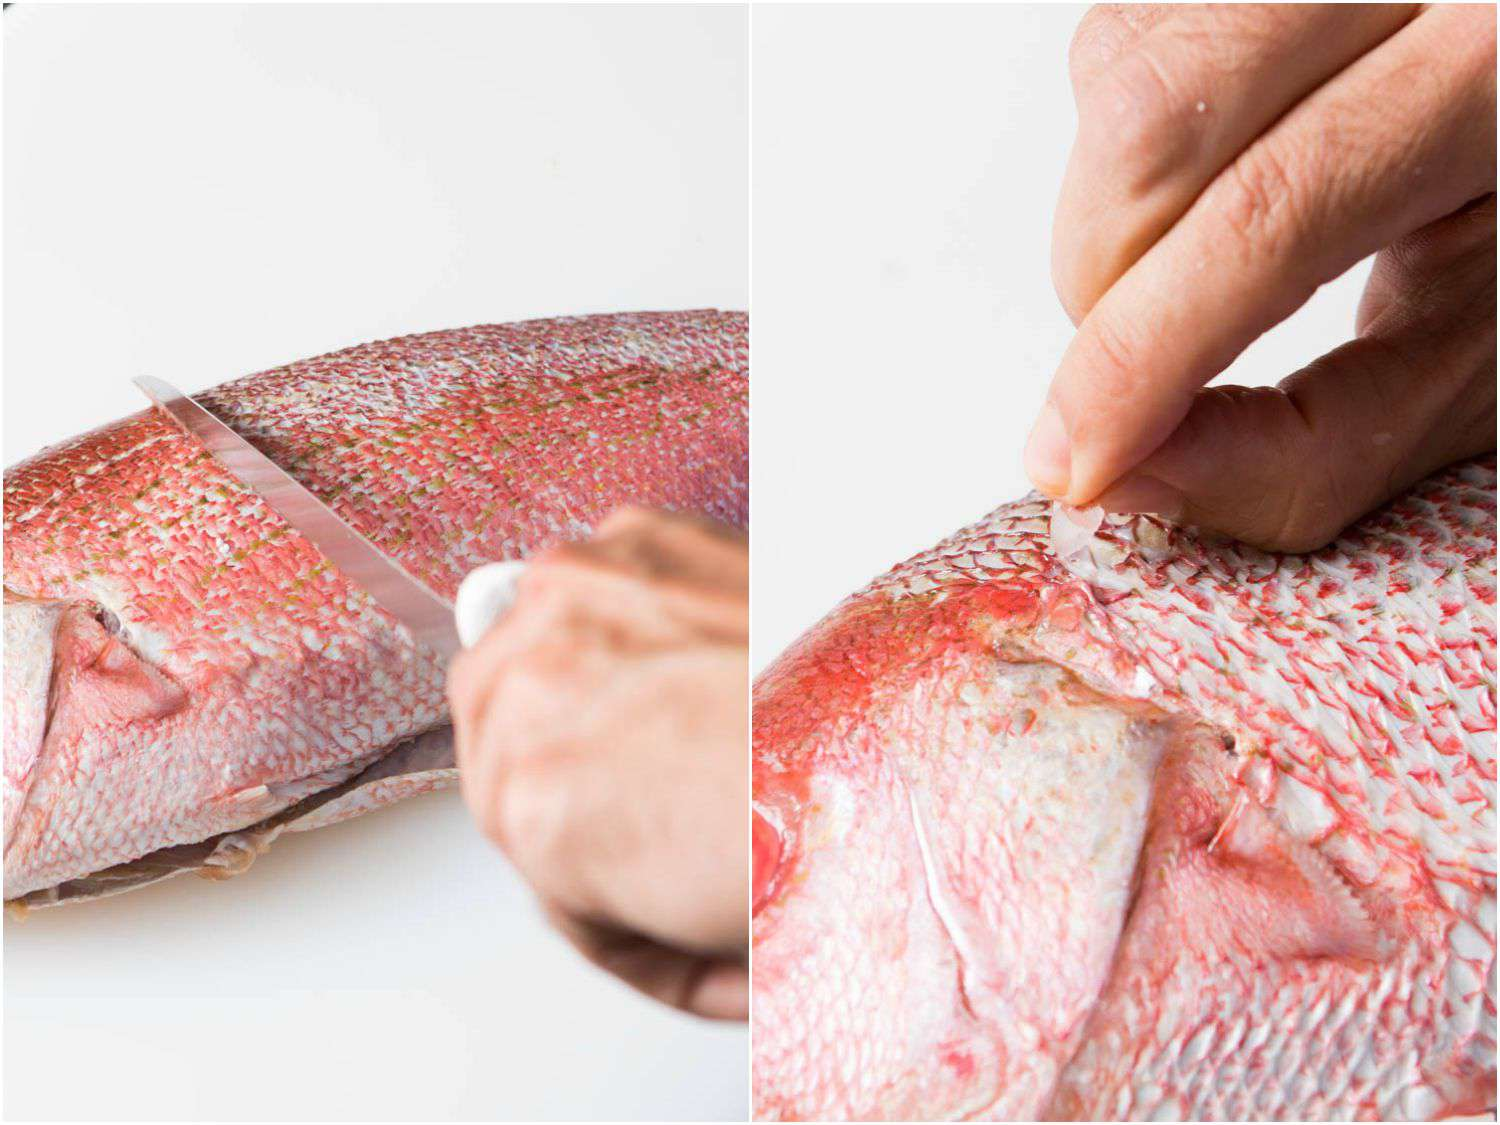 20150922-how-to-fillet-fish-descaling.jpg